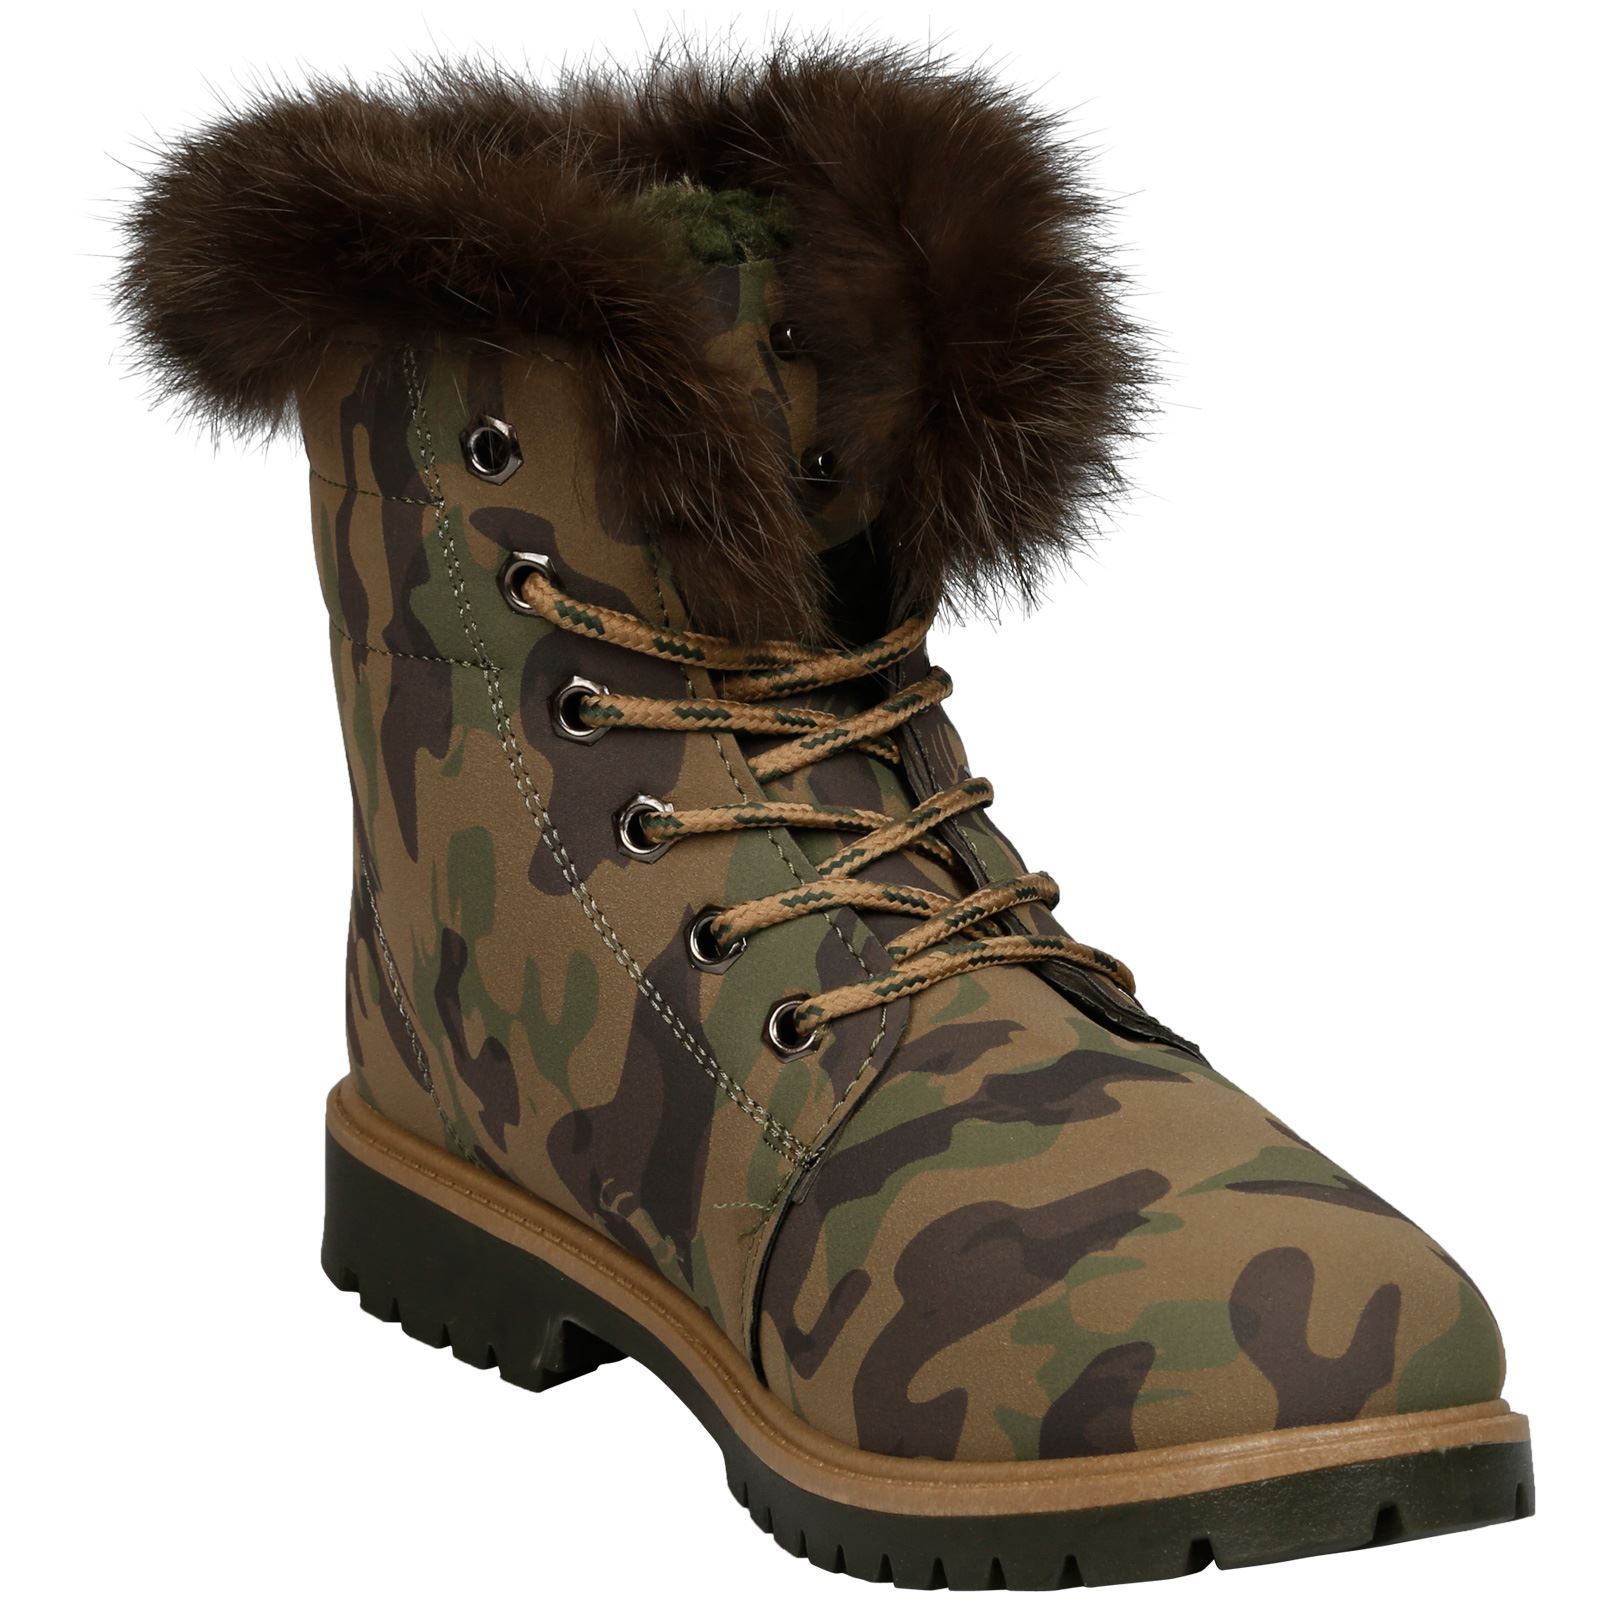 NEW-WOMEN-SHOES-LADIES-FUR-LINED-LOW-HEEL-LACE-UP-ANKLE-BOOTS-CASUAL-STYLE-SIZE thumbnail 5